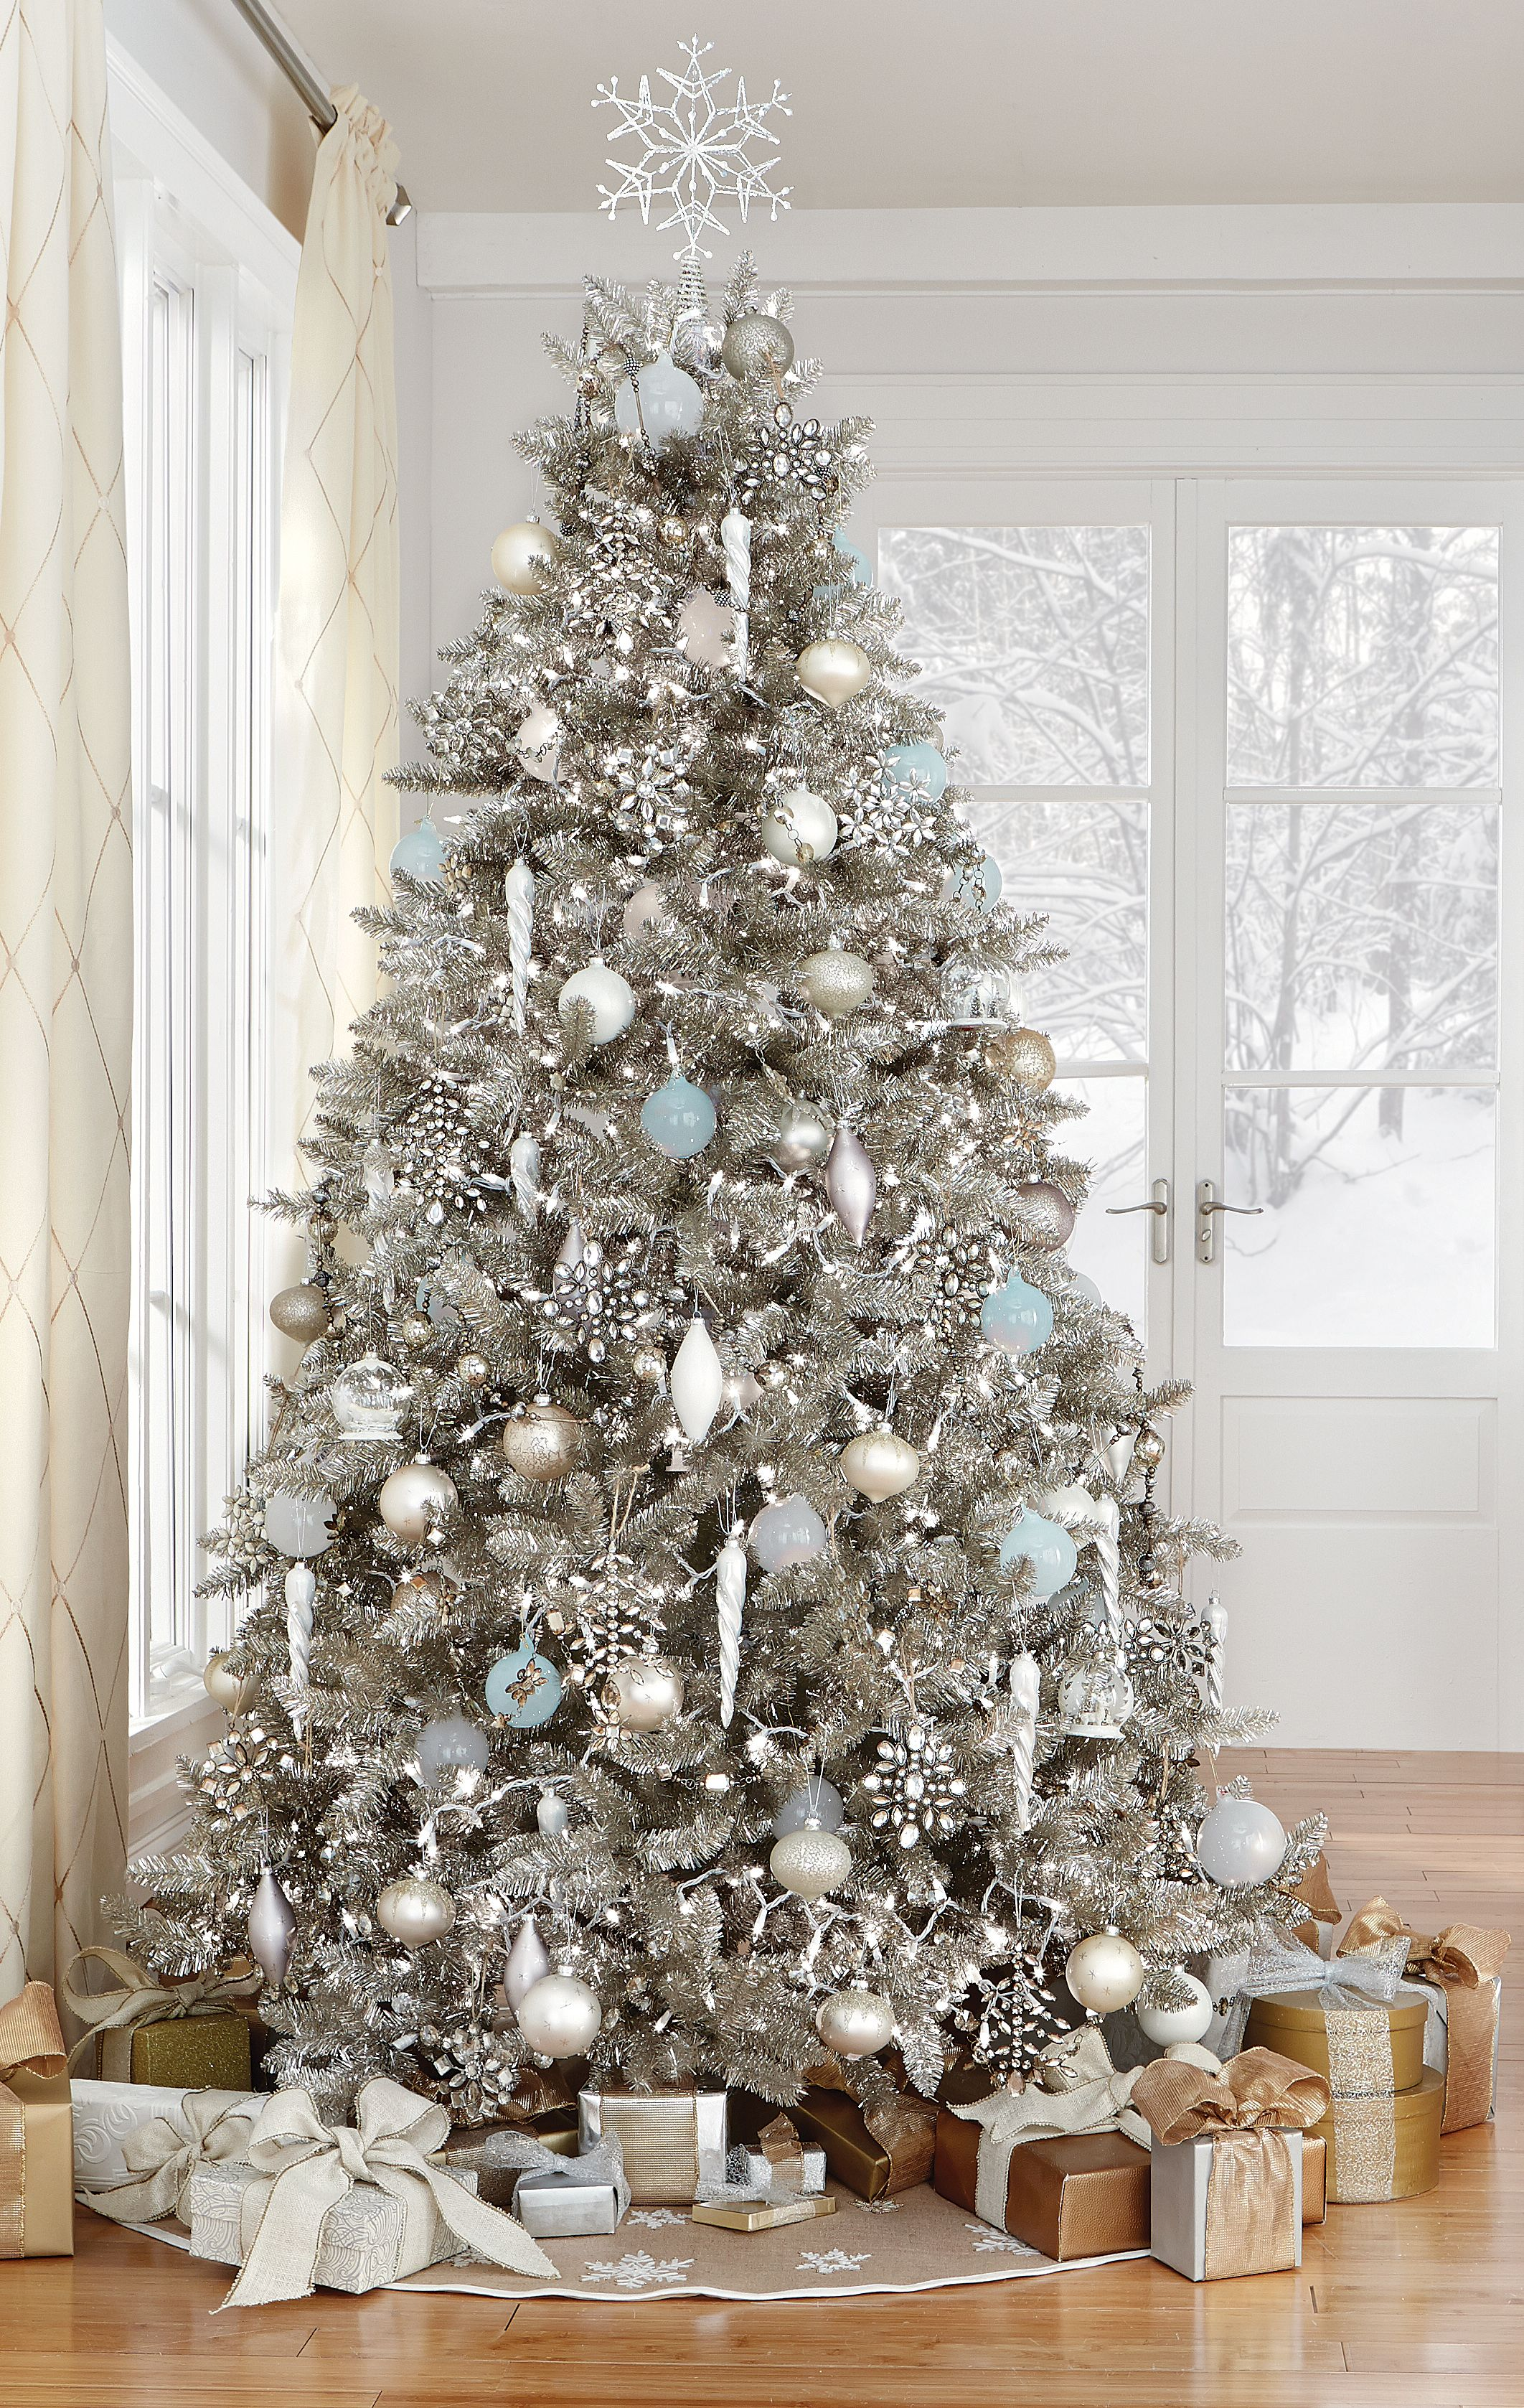 stunning in silver homedecoratorscom holiday2015 - Beautifully Decorated Christmas Tree Images